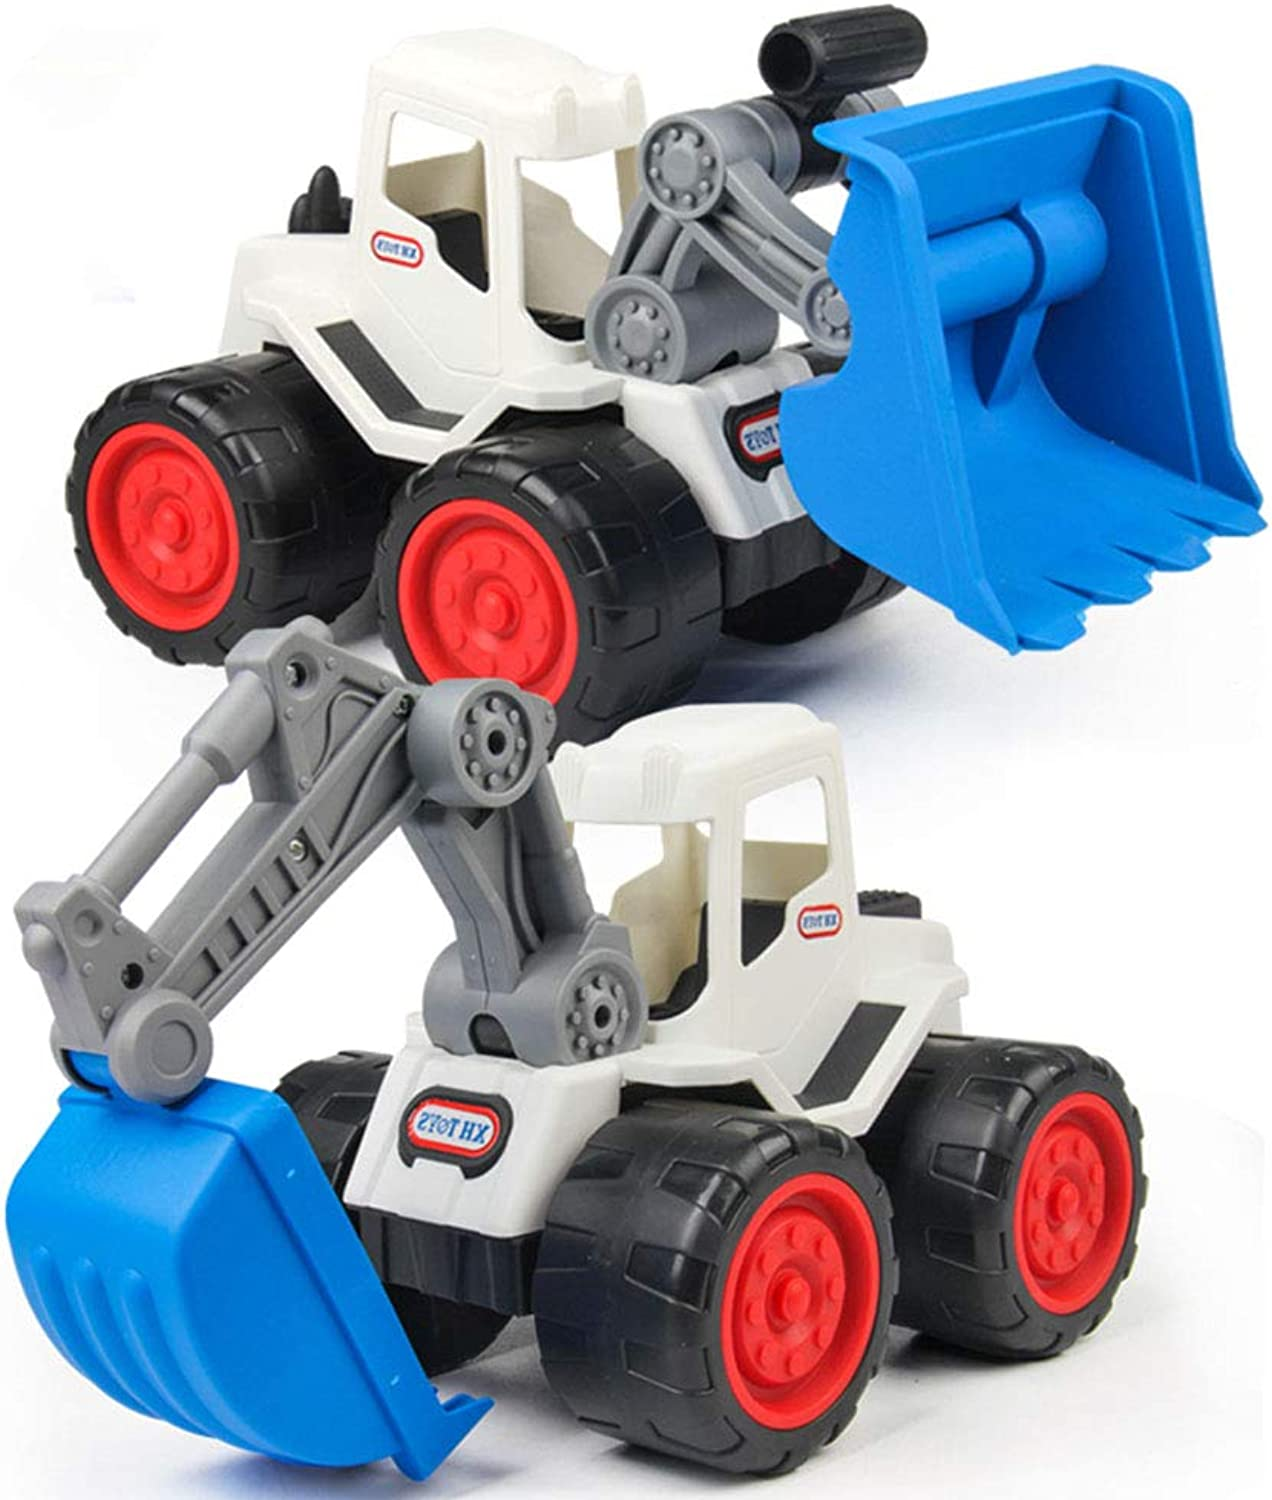 Xyanzi Baby Toys Construction Toys-2 PCS Pullback Excavators and Bulldozers for Boys, Girls, Toddlers and Kids